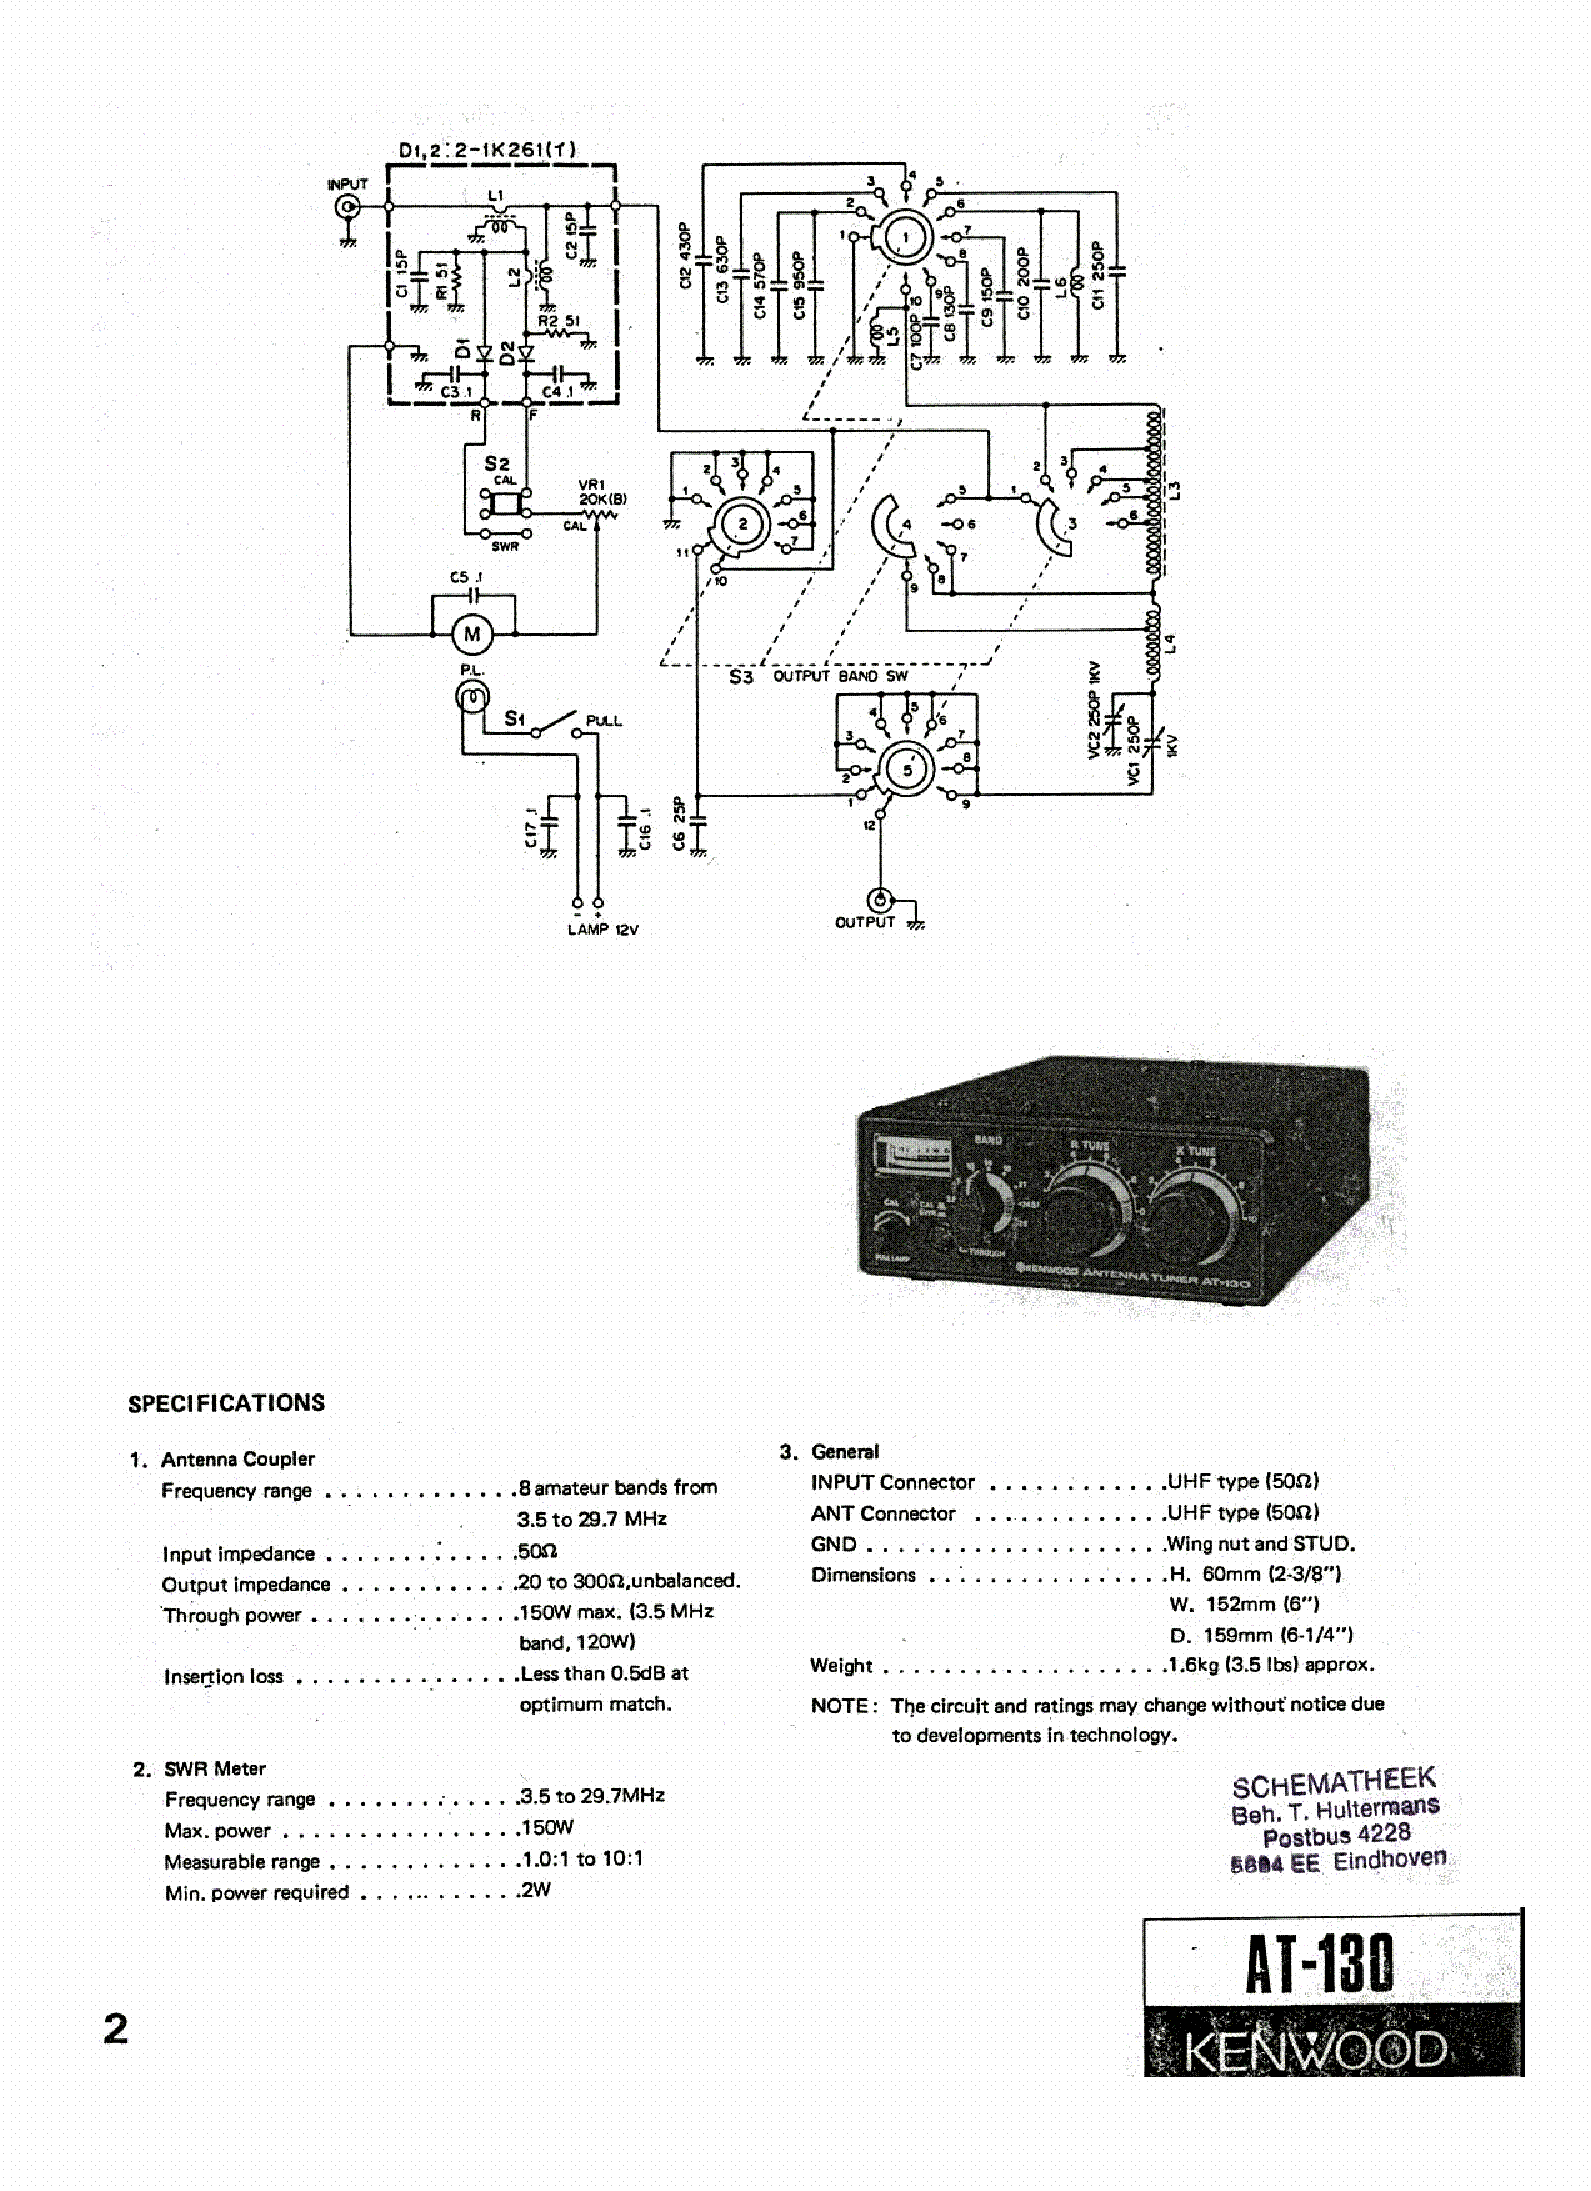 KENWOOD AT-130 service manual (1st page)